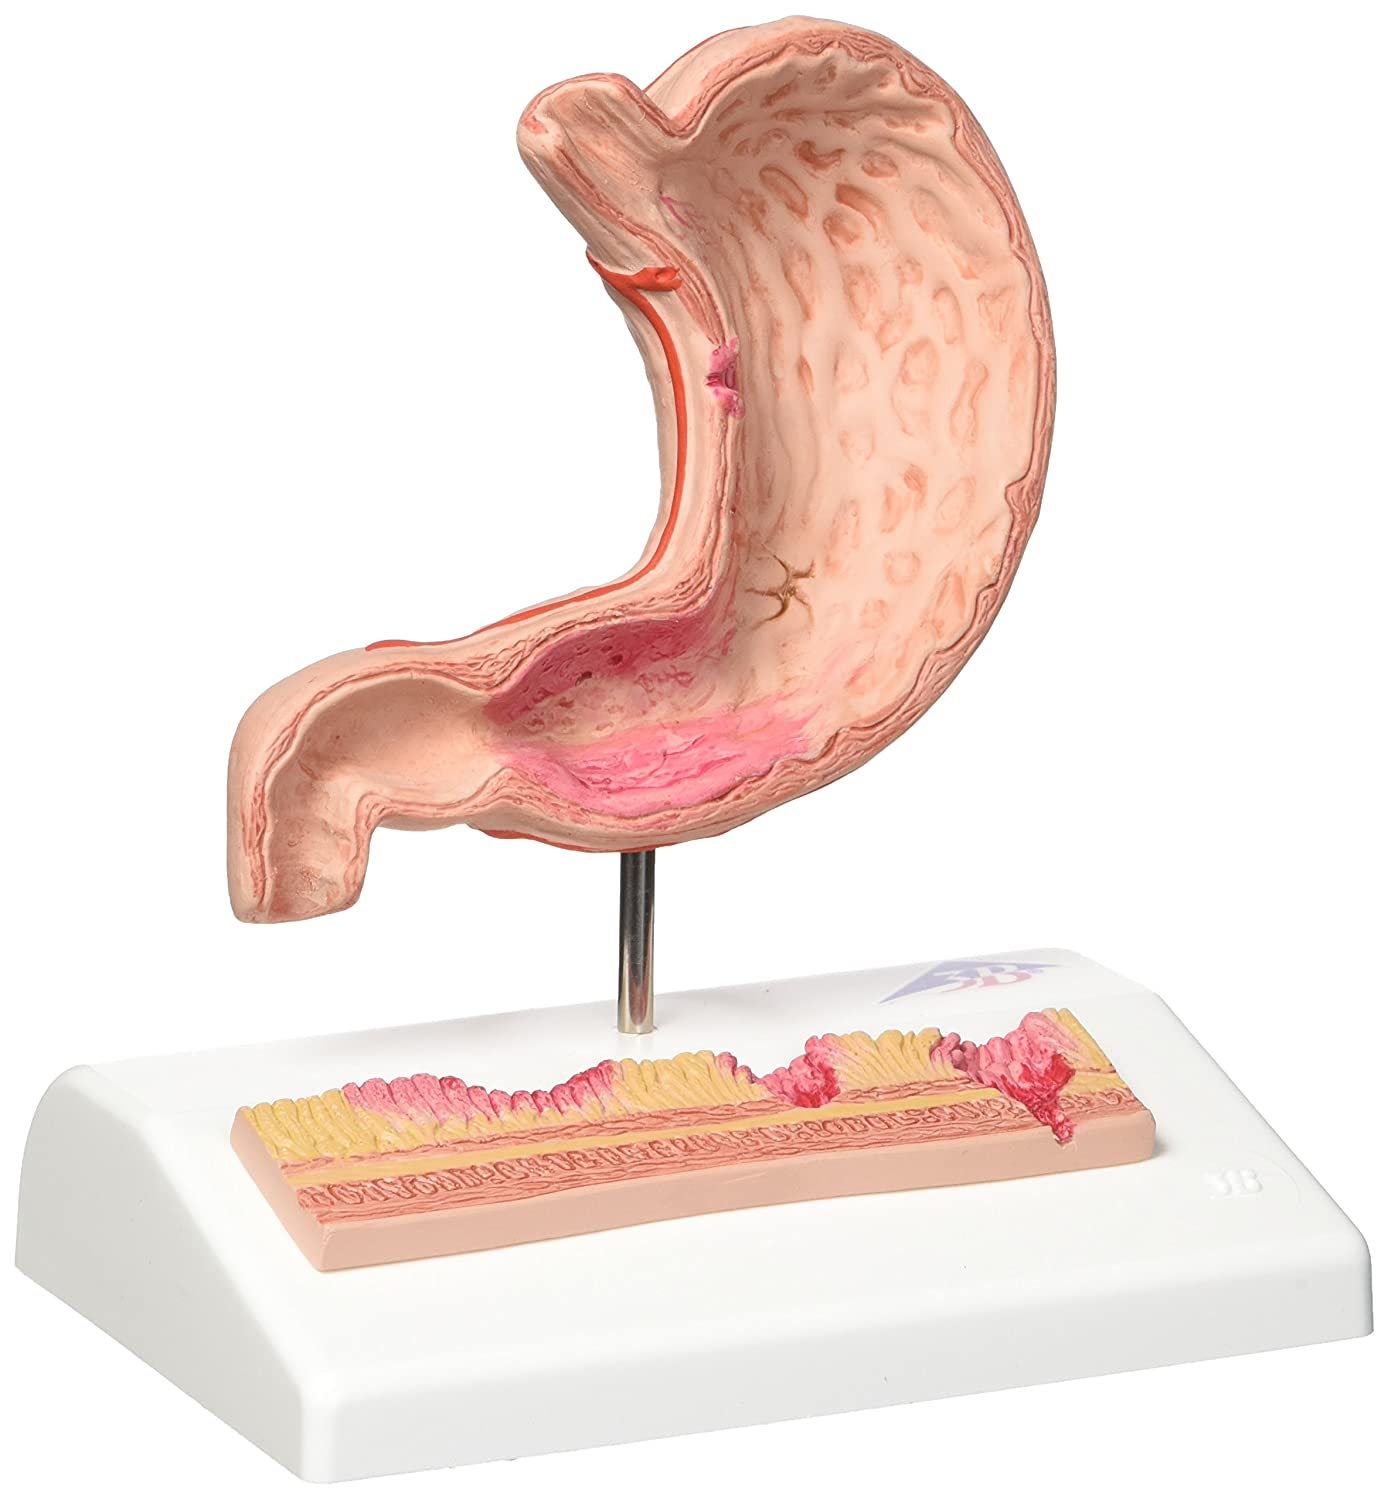 3b Scientific Human Anatomy Stomach Model With Ulcers Amazon